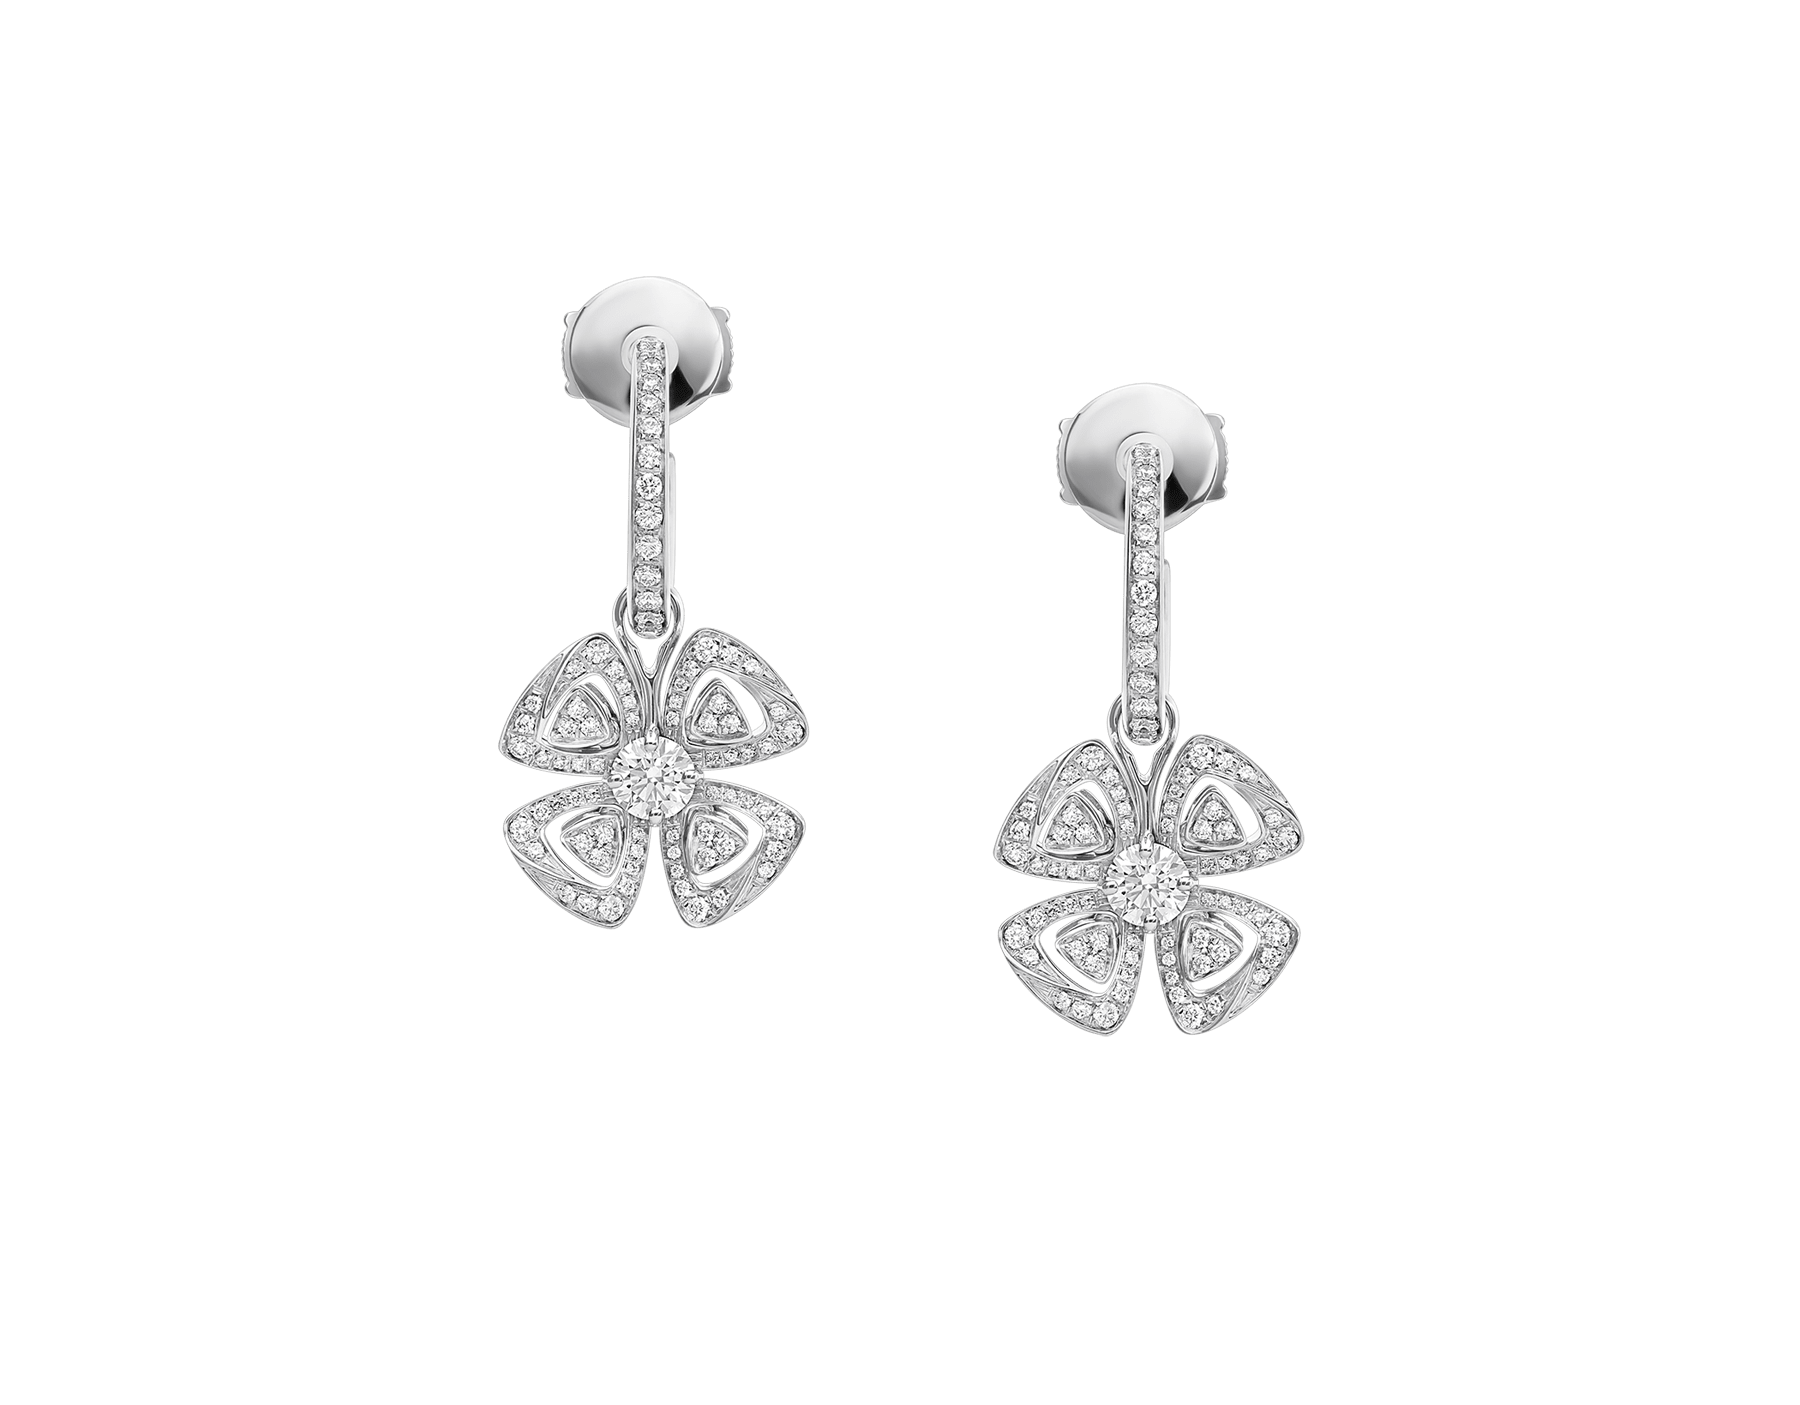 Fiorever 18 kt white gold hoop earring, set with two central round brilliant-cut diamonds and pavé diamonds. 357323 image 1